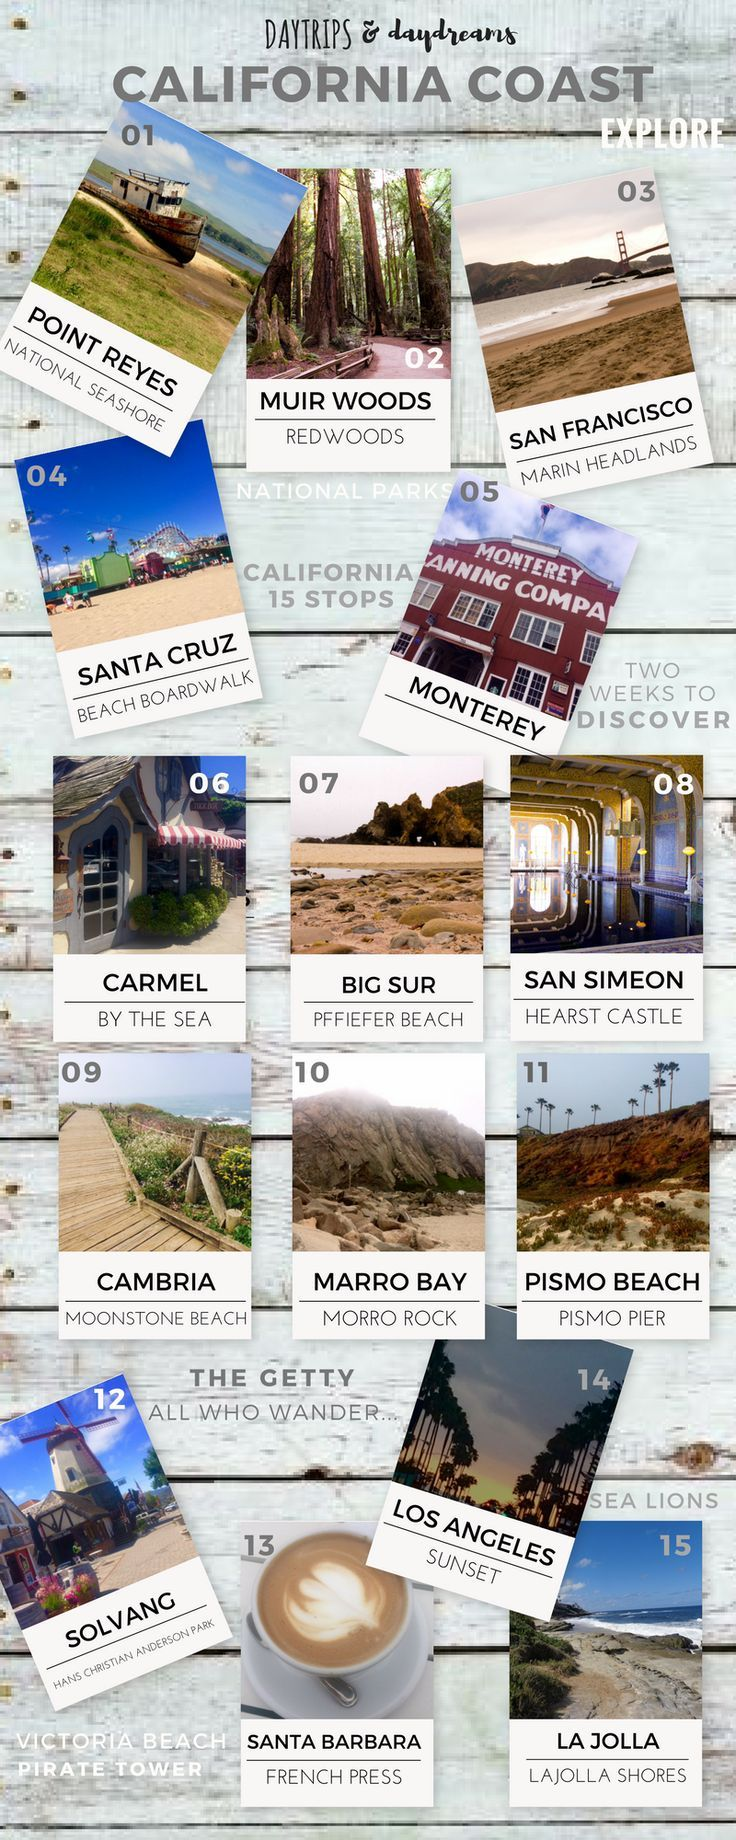 California Coast Map and Itinerary 15 stops